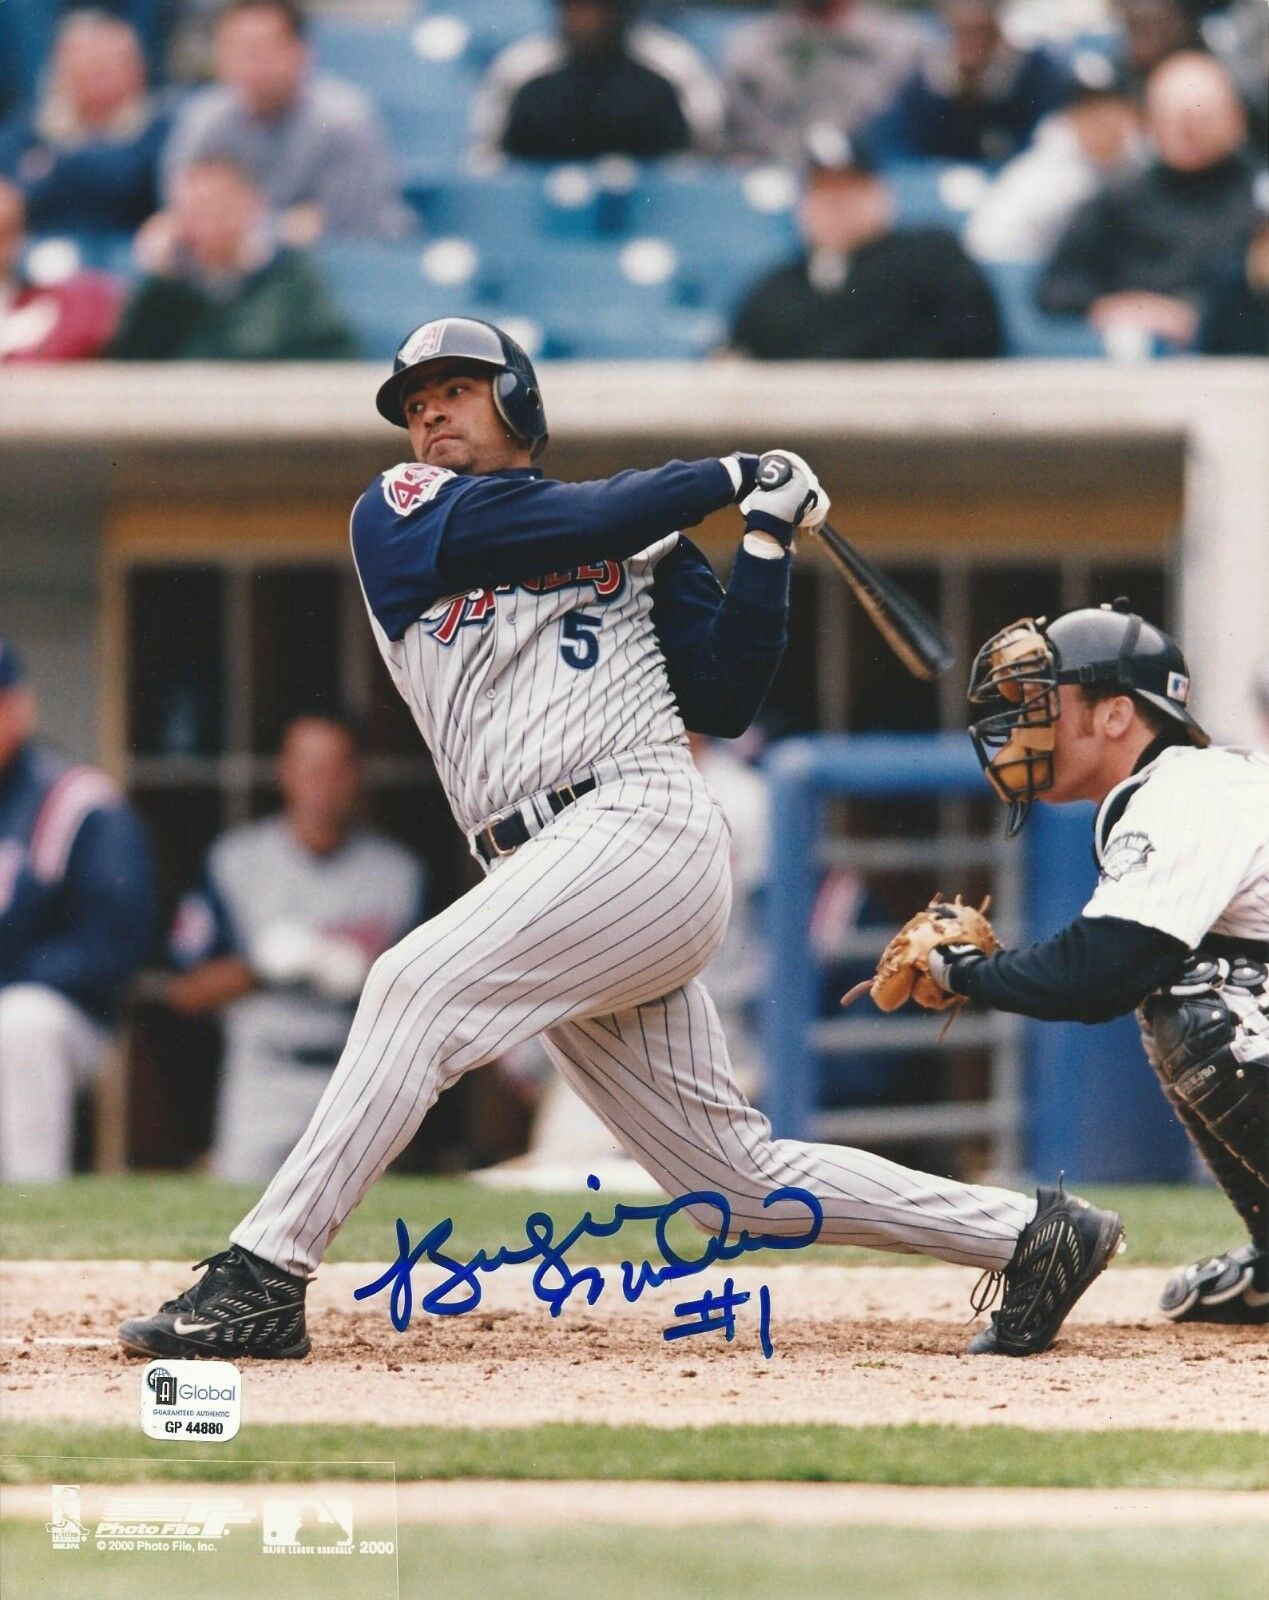 Benjie Molina Anaheim Angels signed 8x10 photo GAI Cert# GP44880